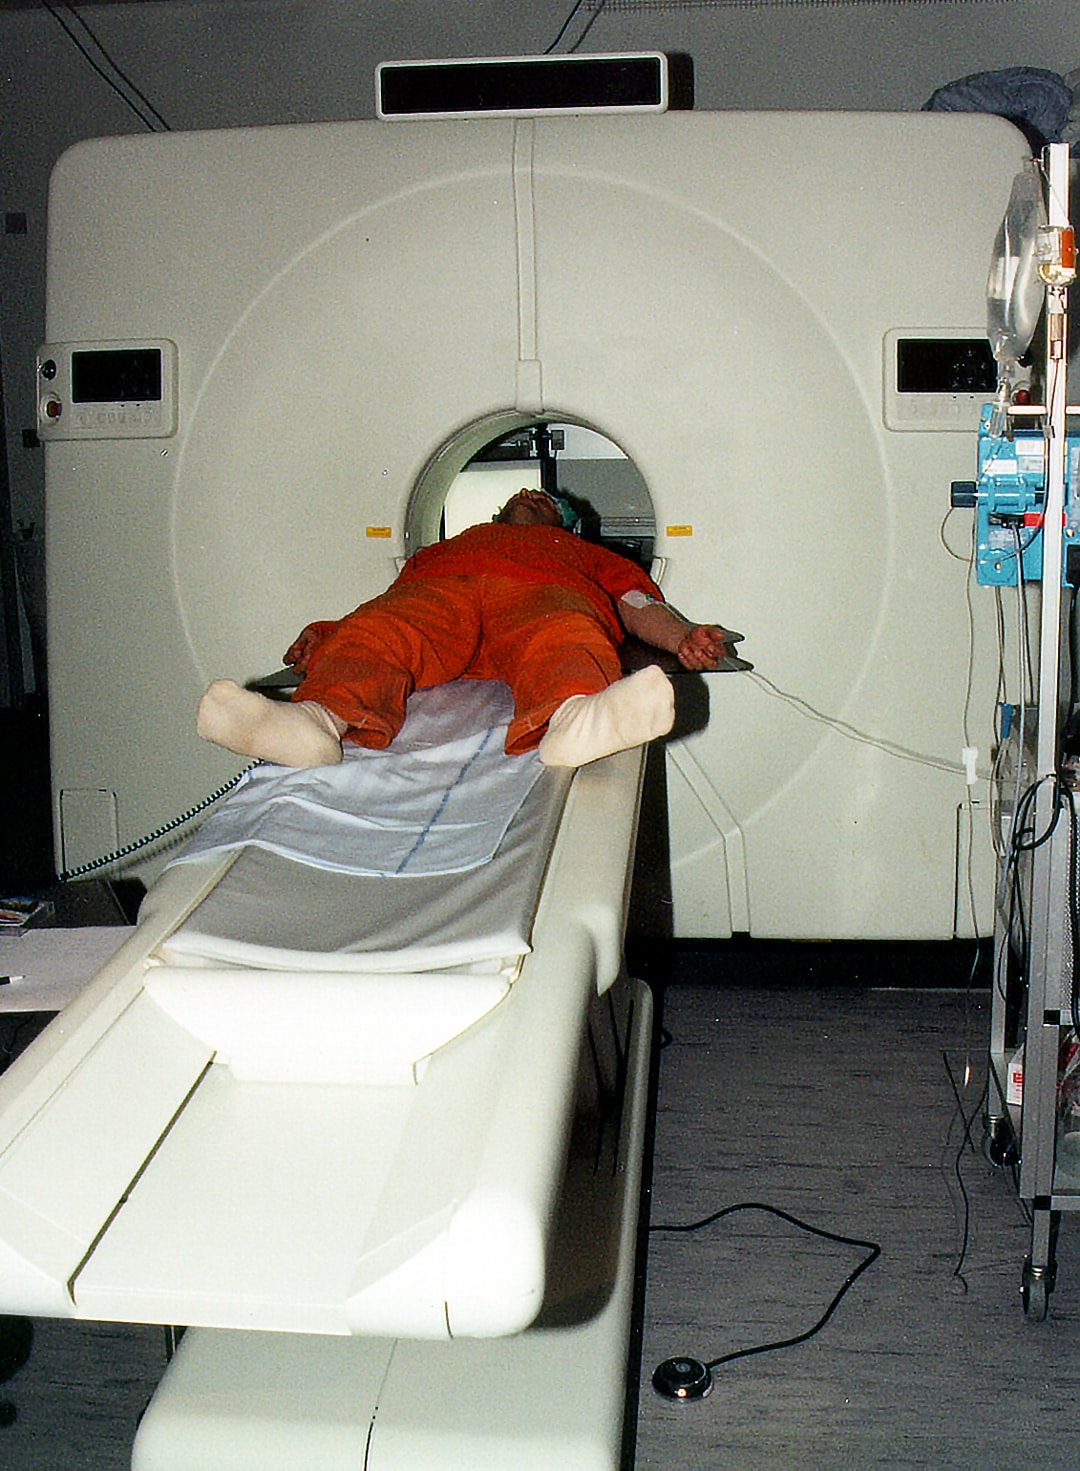 pet-scan-aleneb